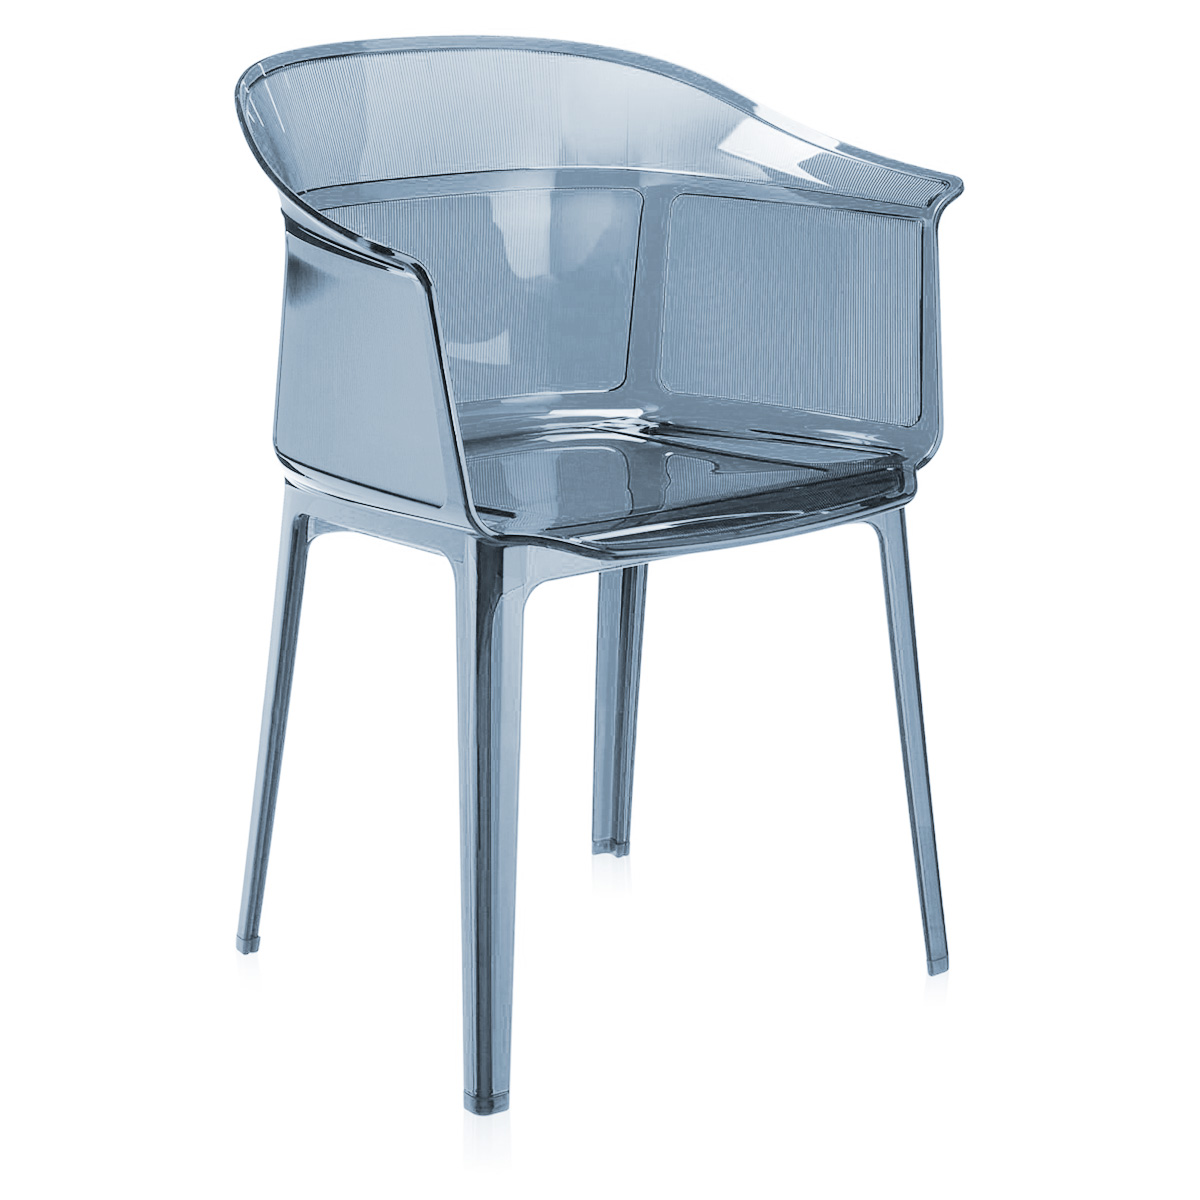 kartell papyrus armchair designed by ronan erwan bouroullec